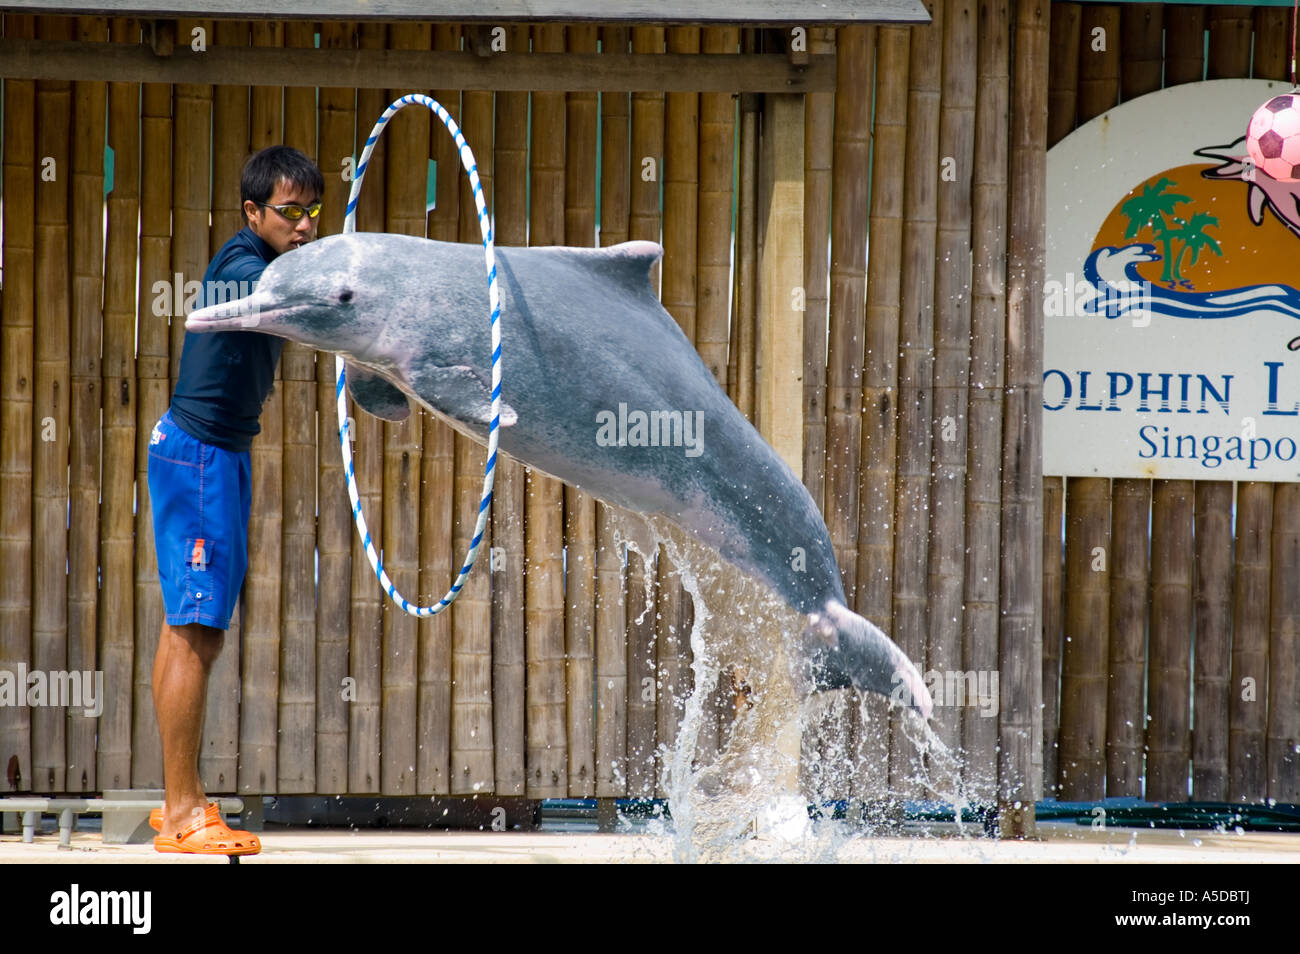 Stock photo of a pink dolphin leaping through a hoop at the Dolphin Lagoon on Sentosa Island Singapore - Stock Image